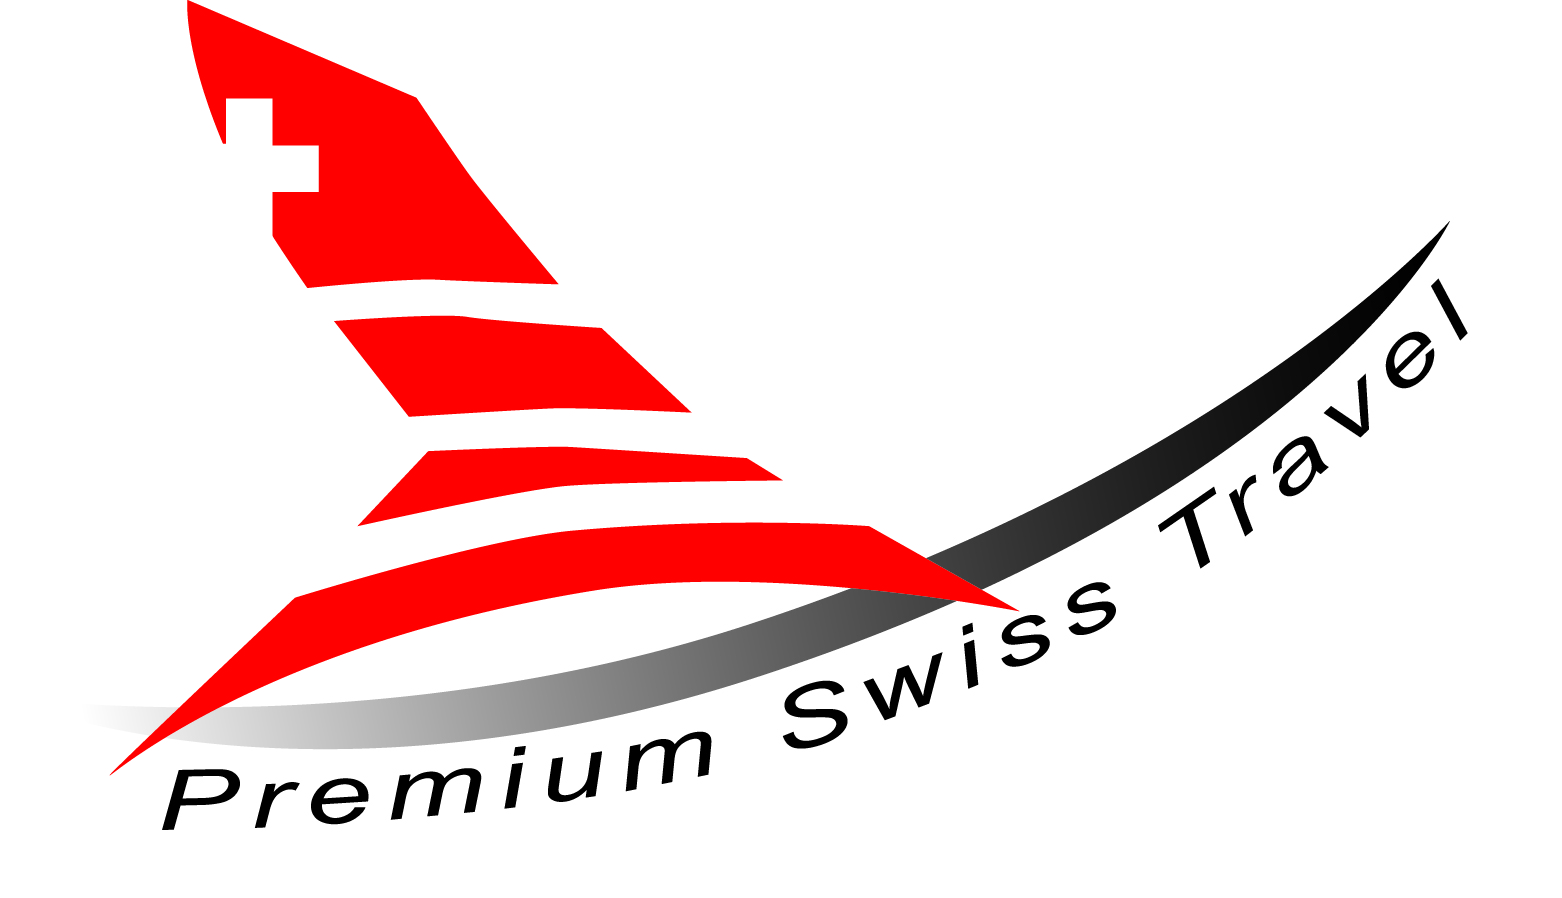 Premium Swiss Travel | Min/max days stay Archives - Premium Swiss Travel